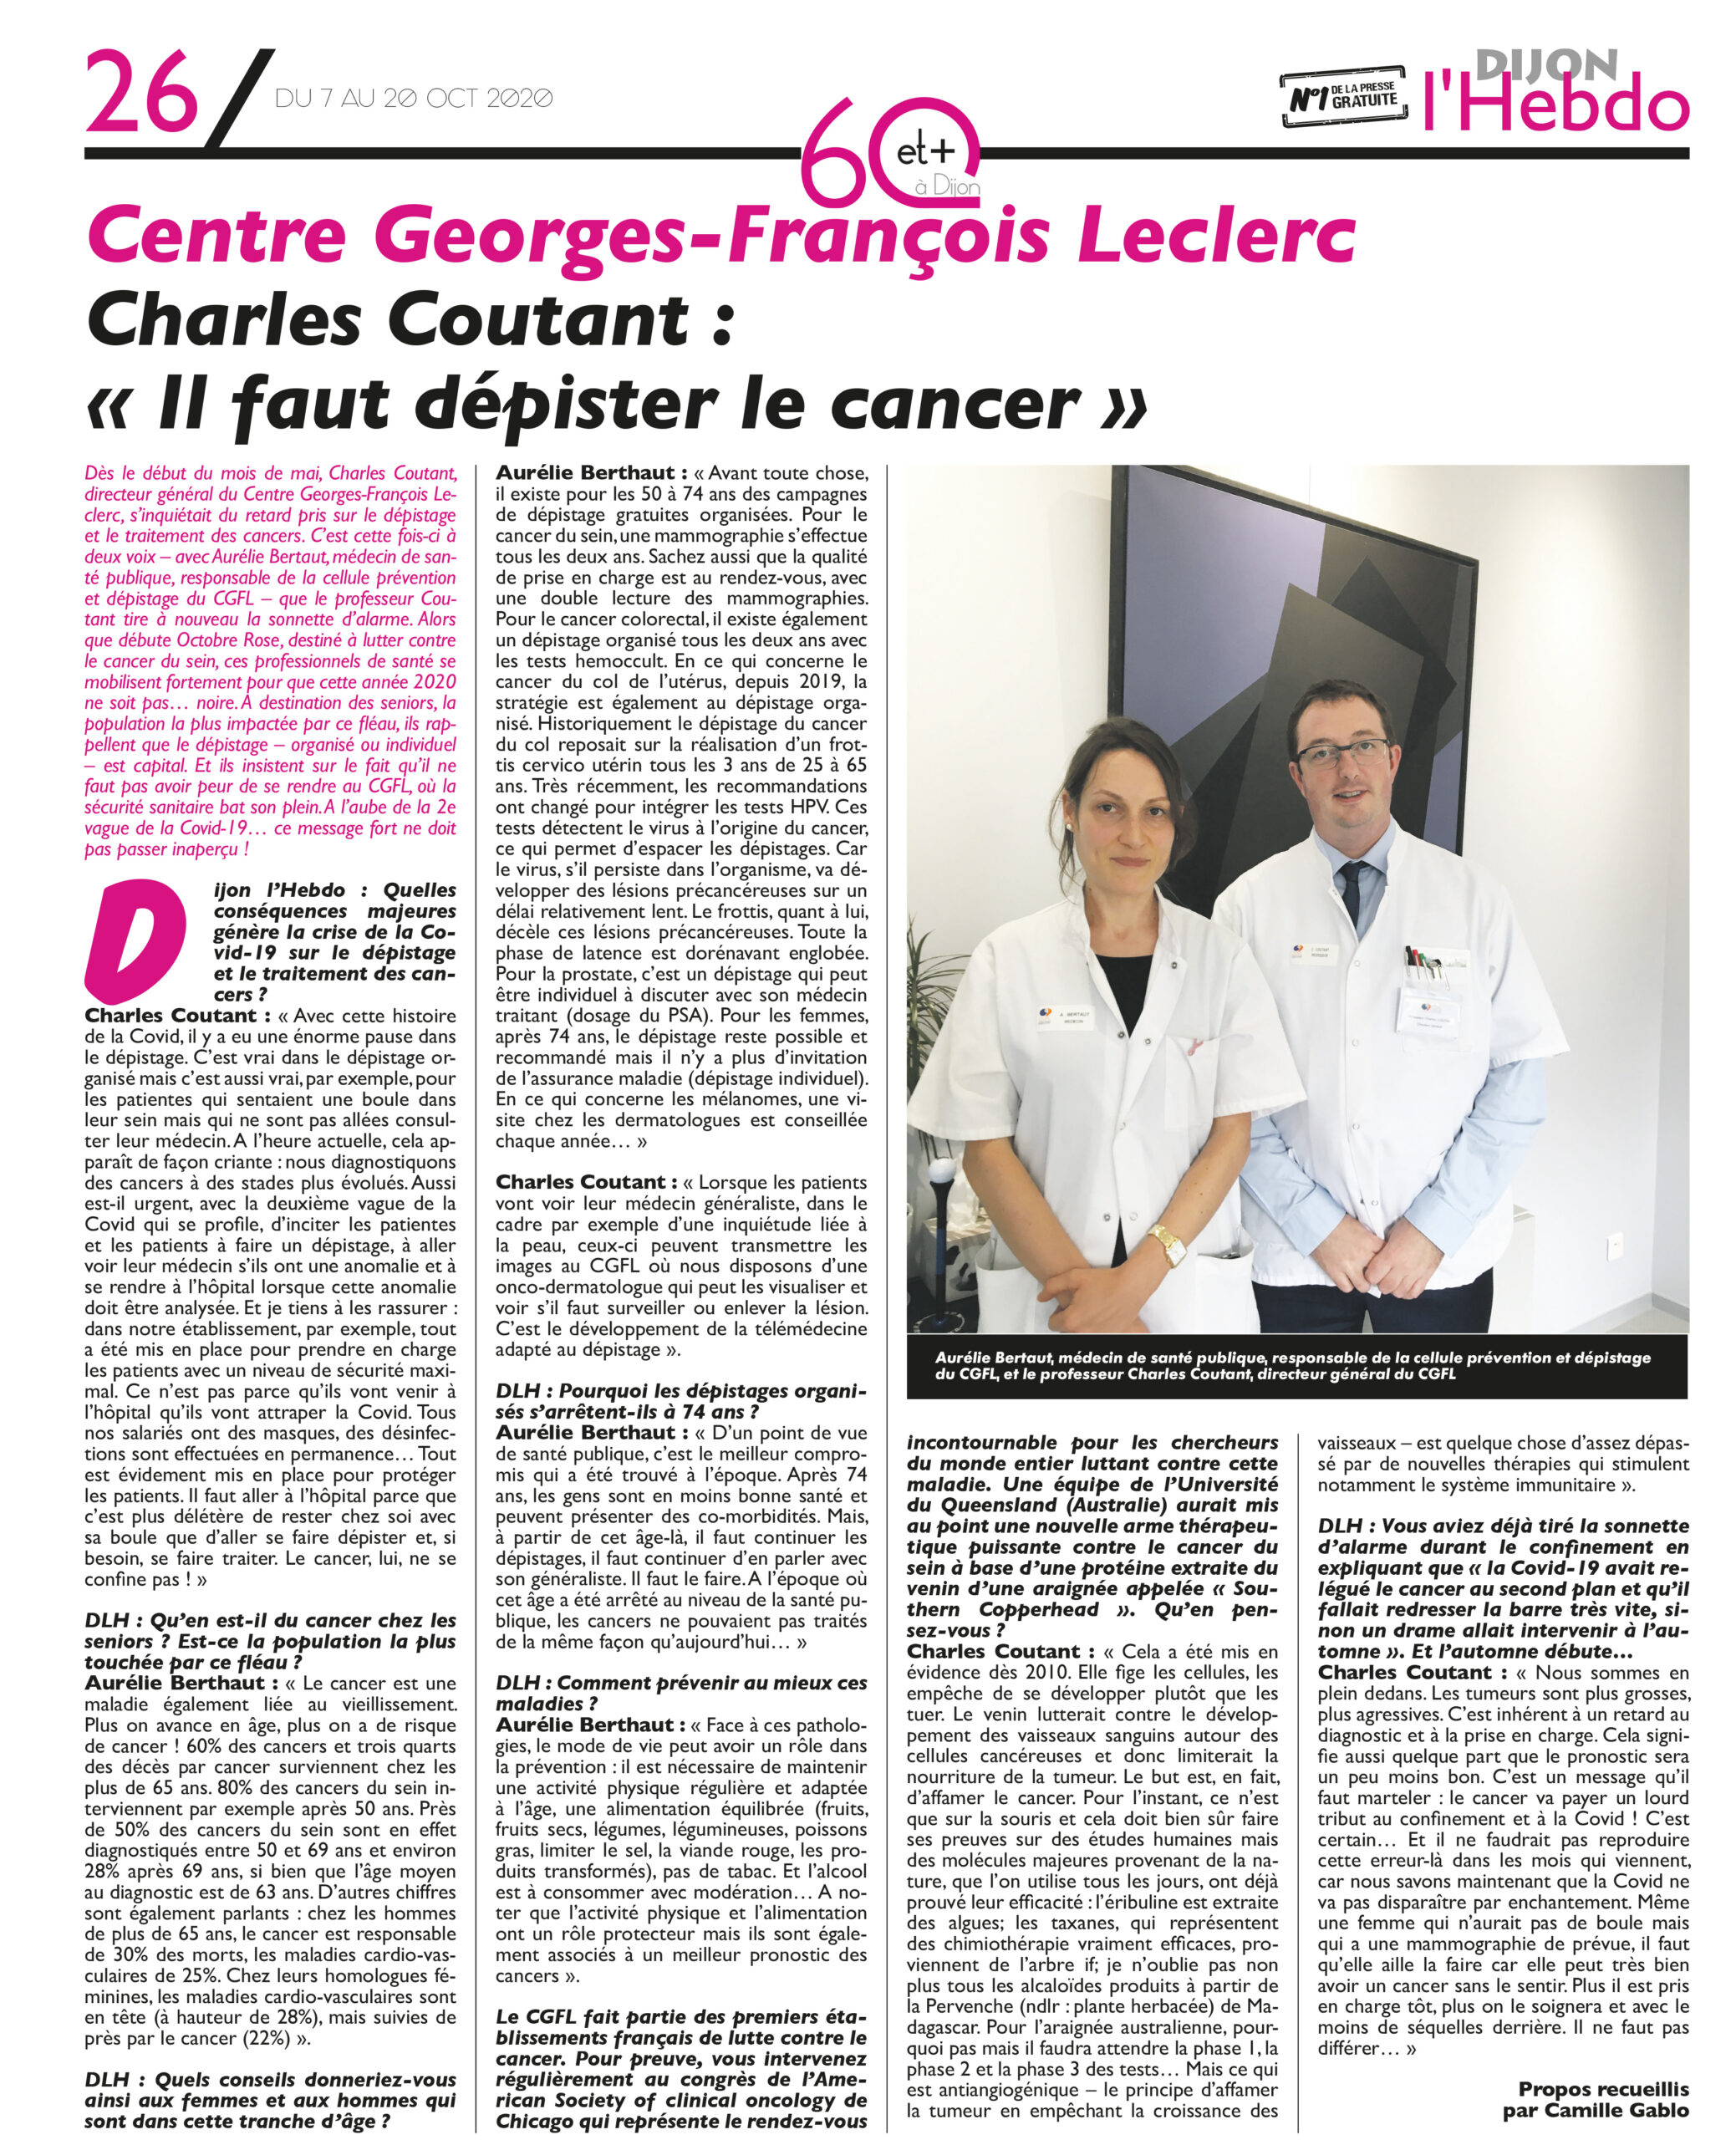 dijon lhebdo article